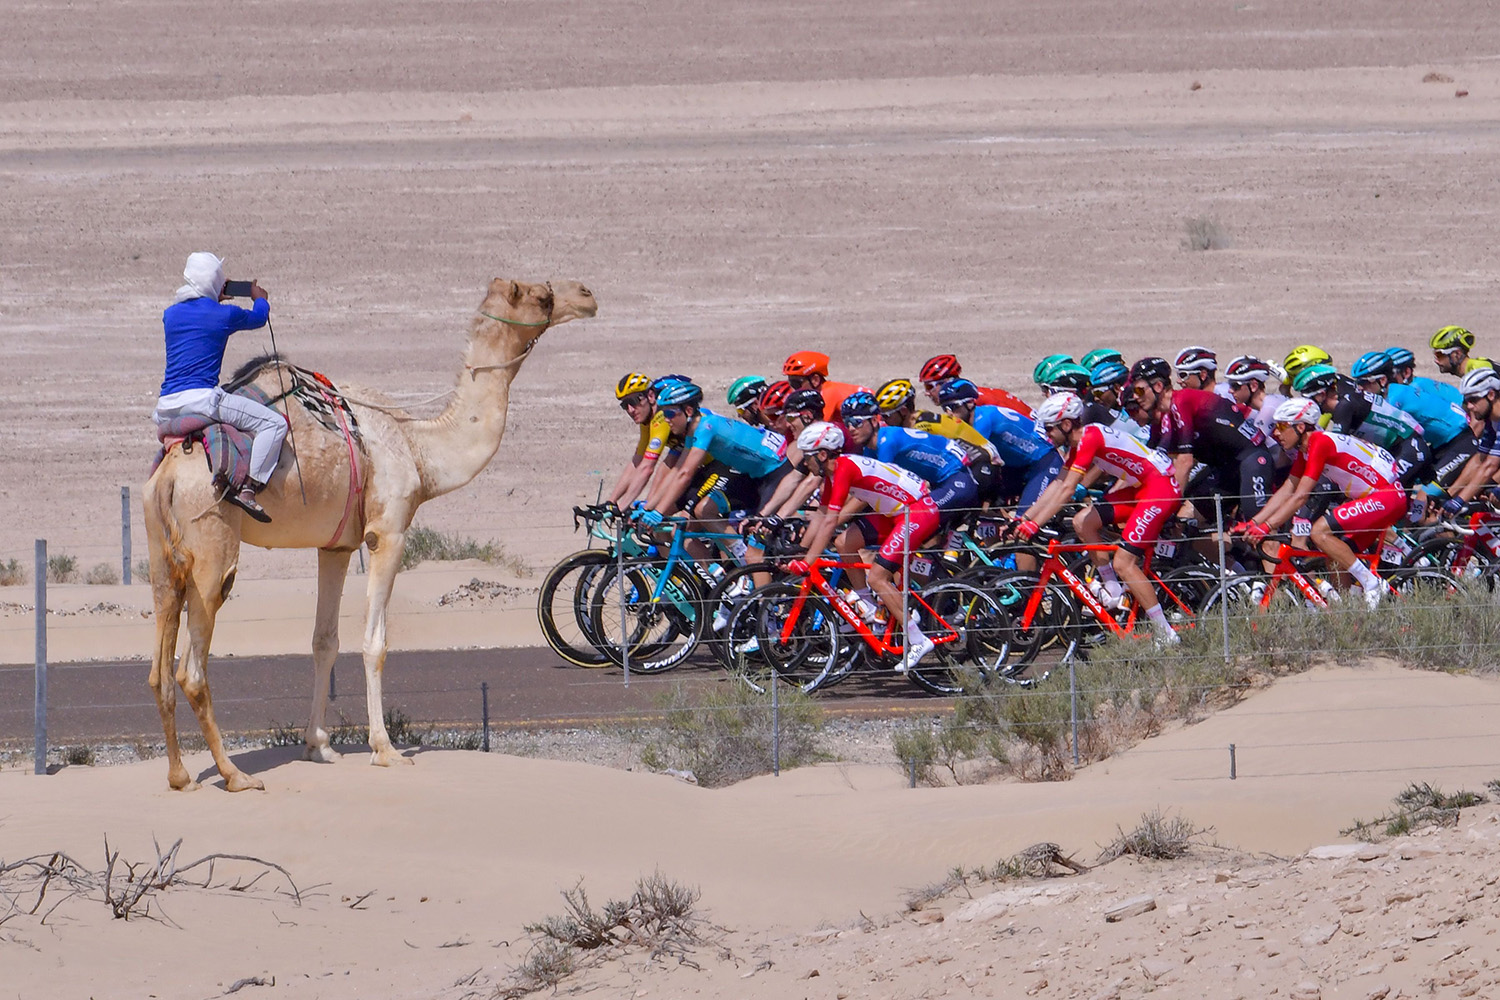 The pack rides during the third stage of the UAE Cycling Tour from al-Maroom to Jebel Hafeet on Feb. 24. GIUSEPPE CACACE/AFP via Getty Images